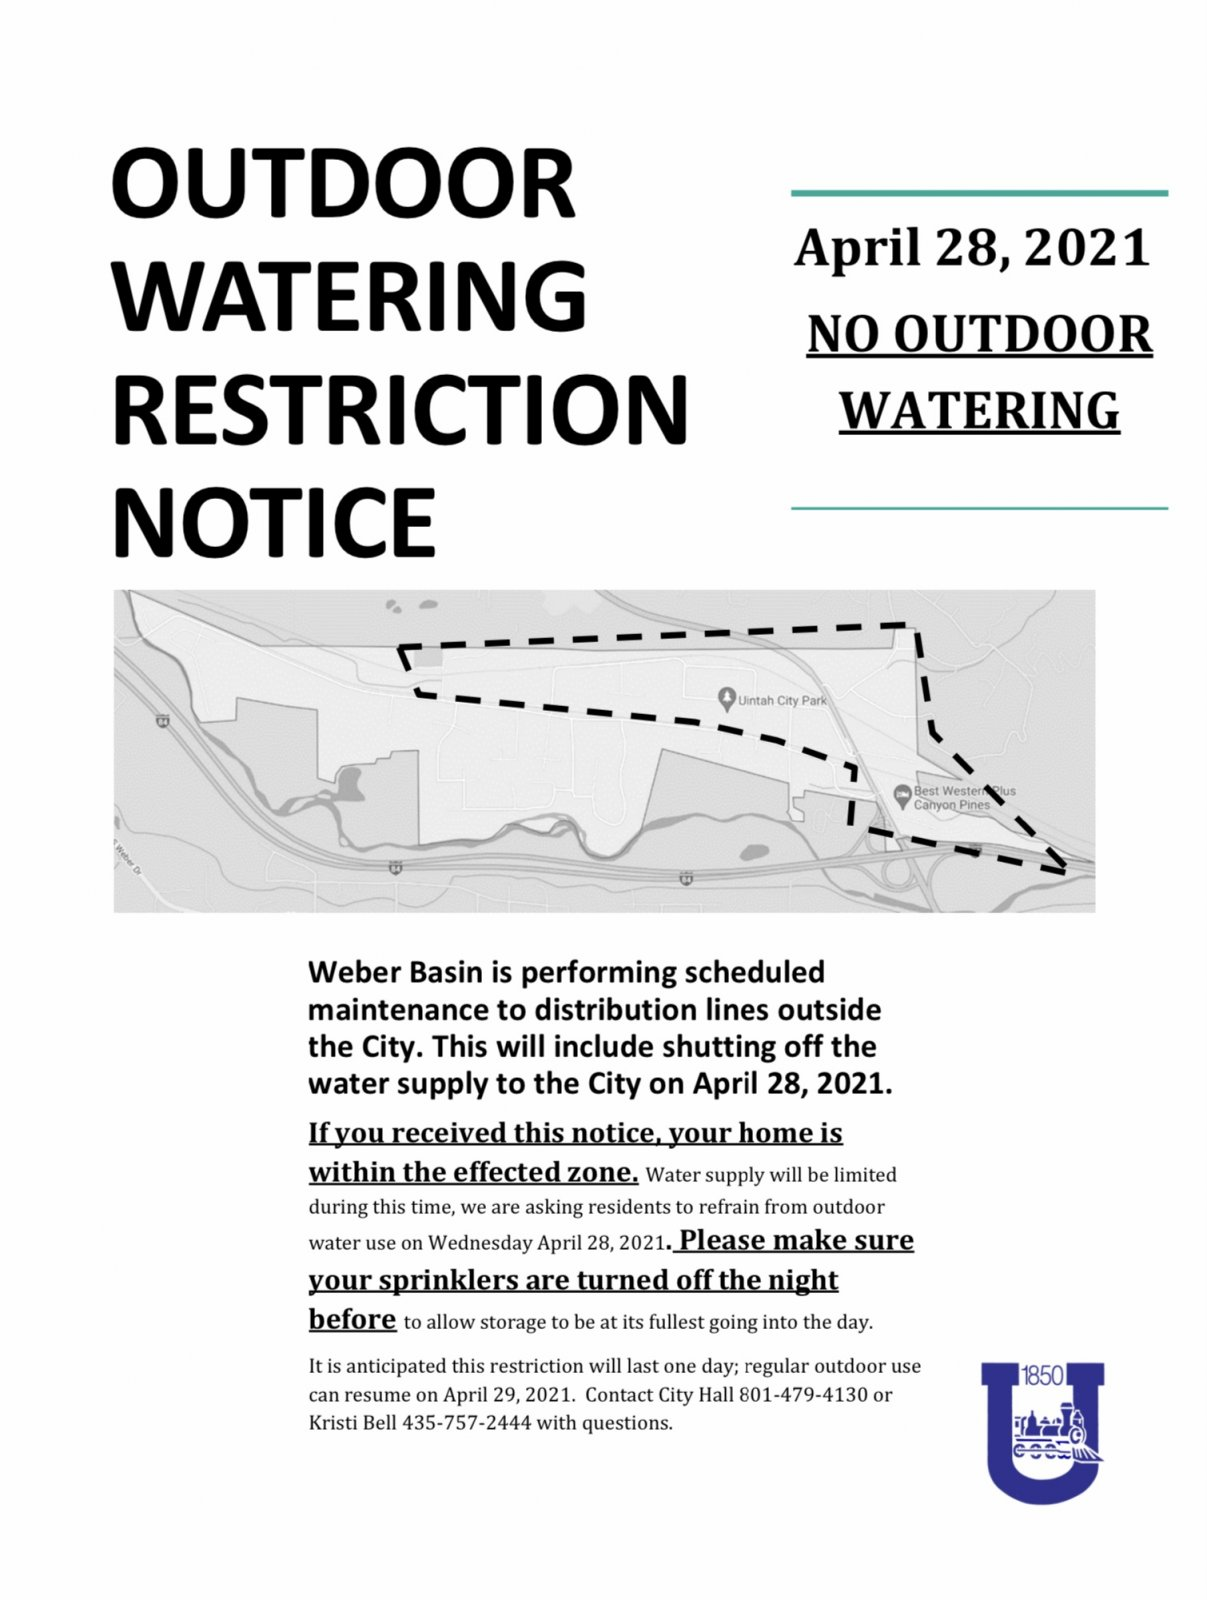 Outdoor Watering Restriction